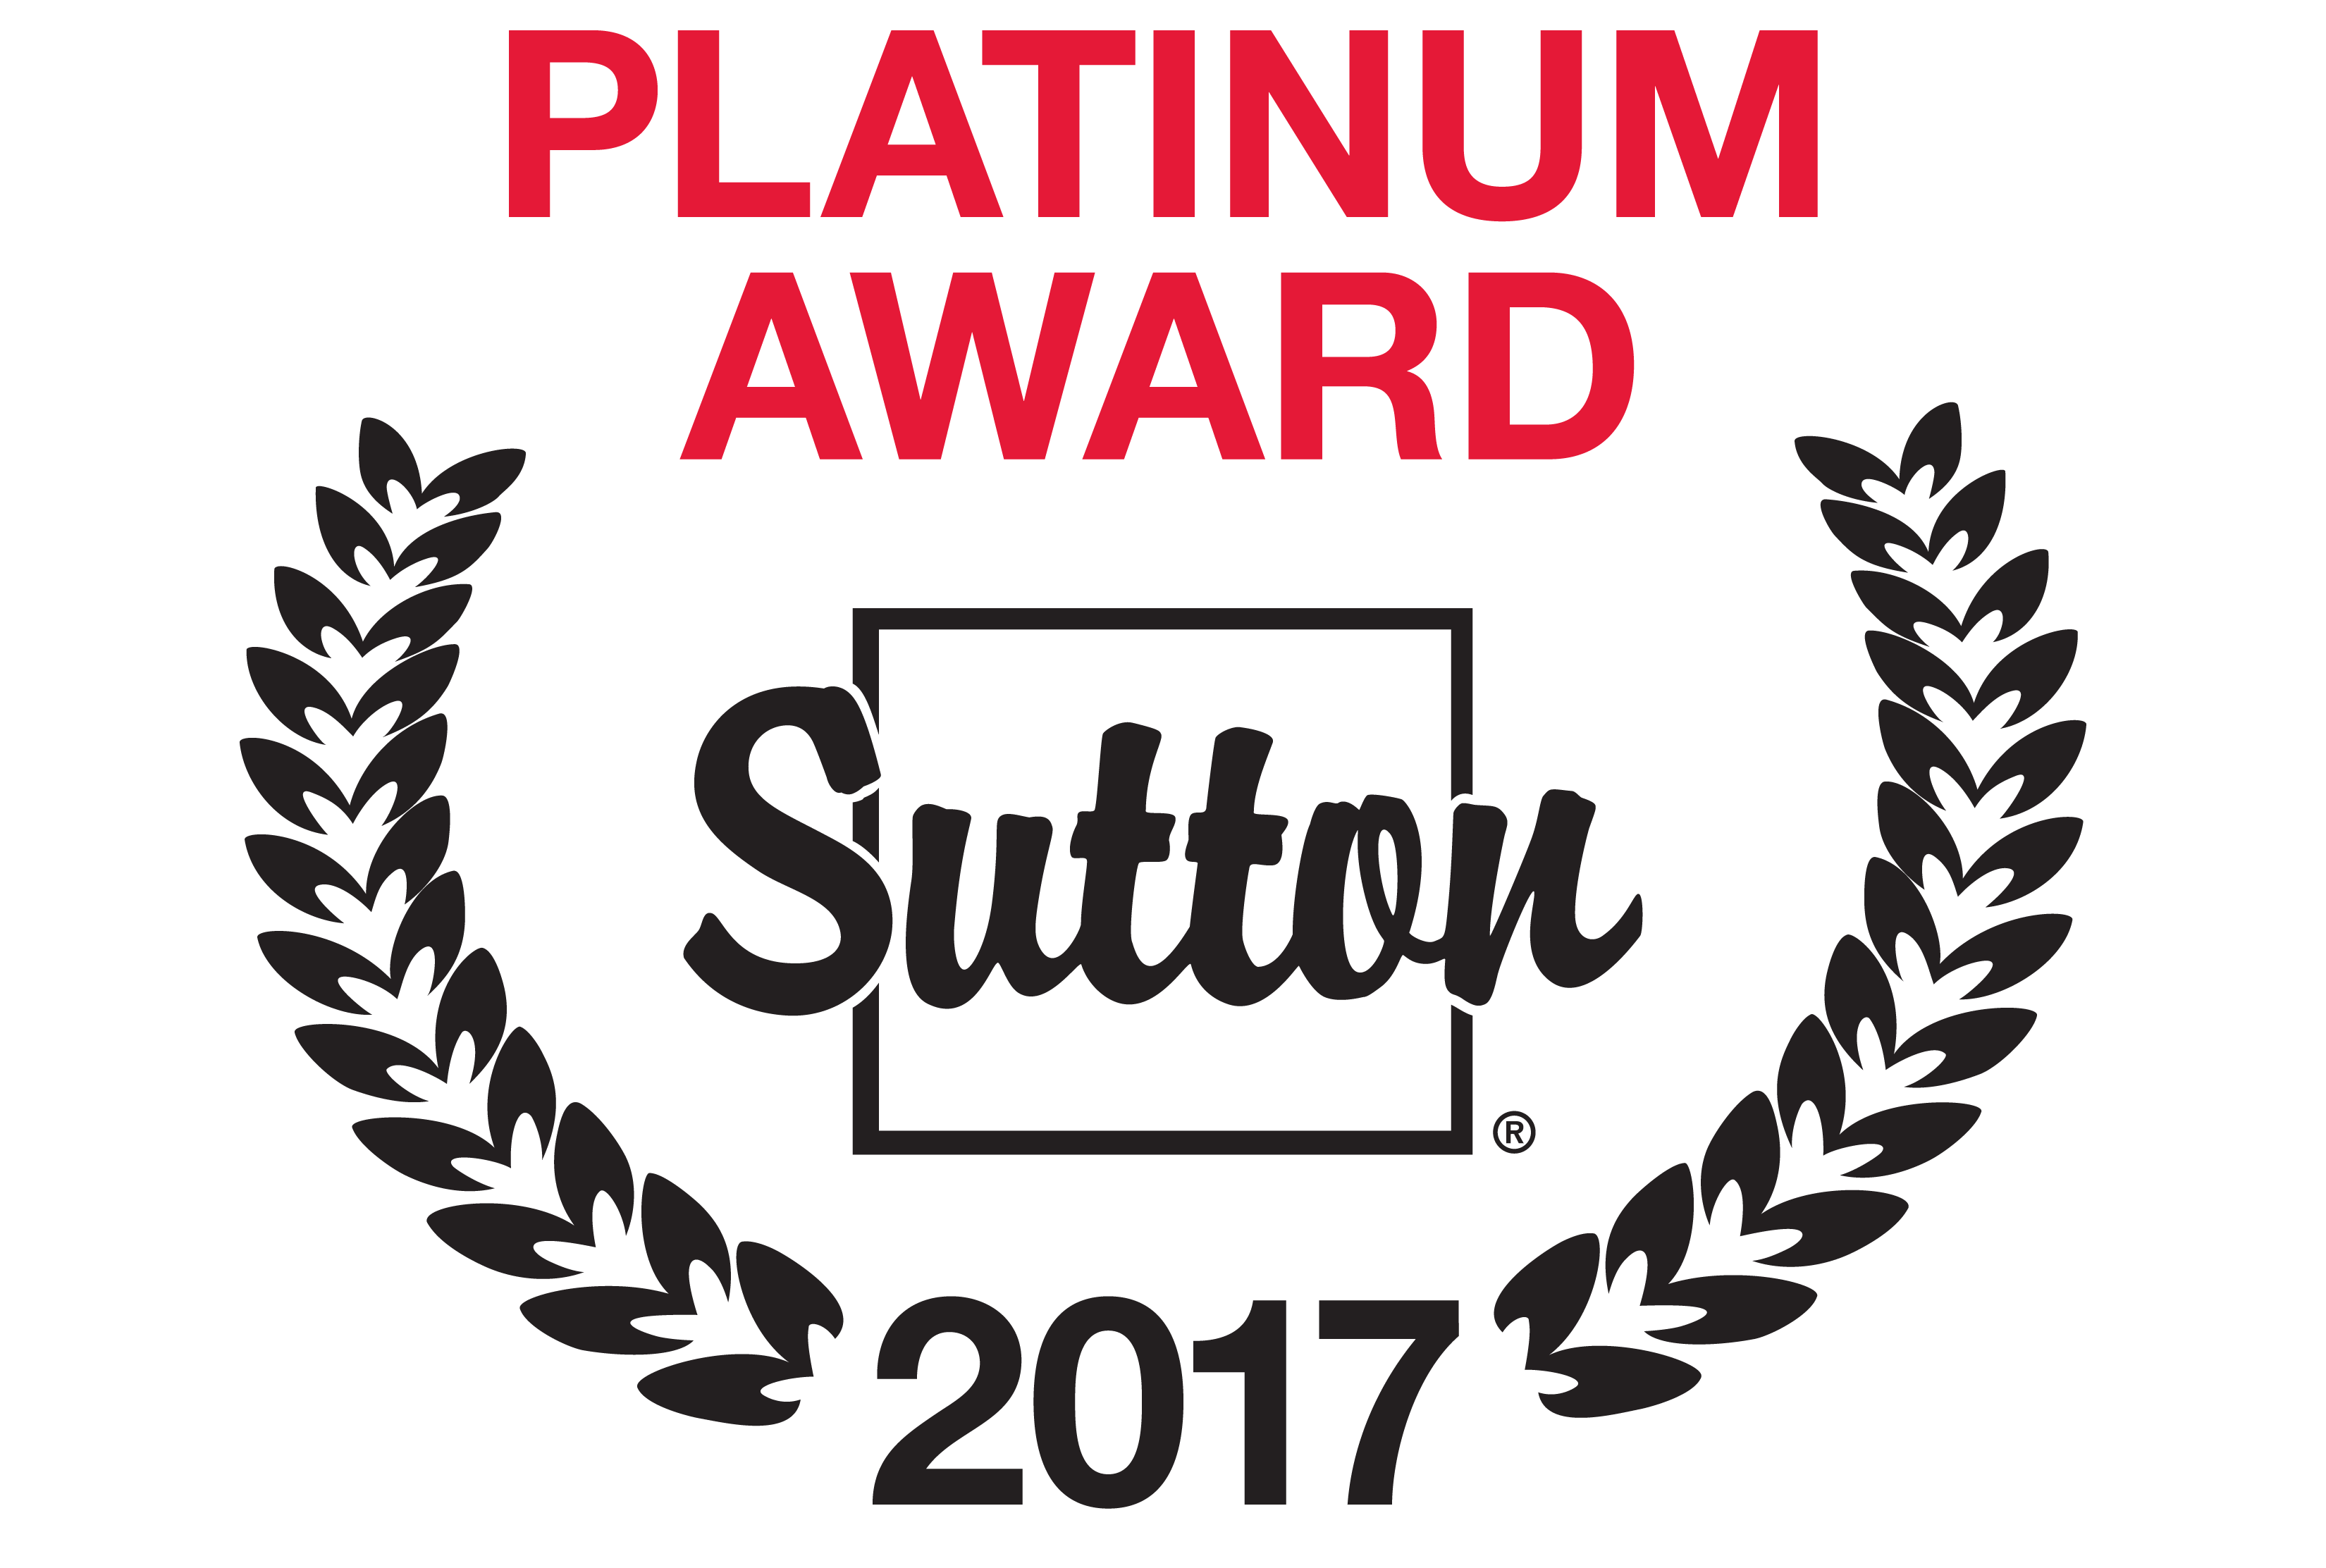 platinum_award_-_2017